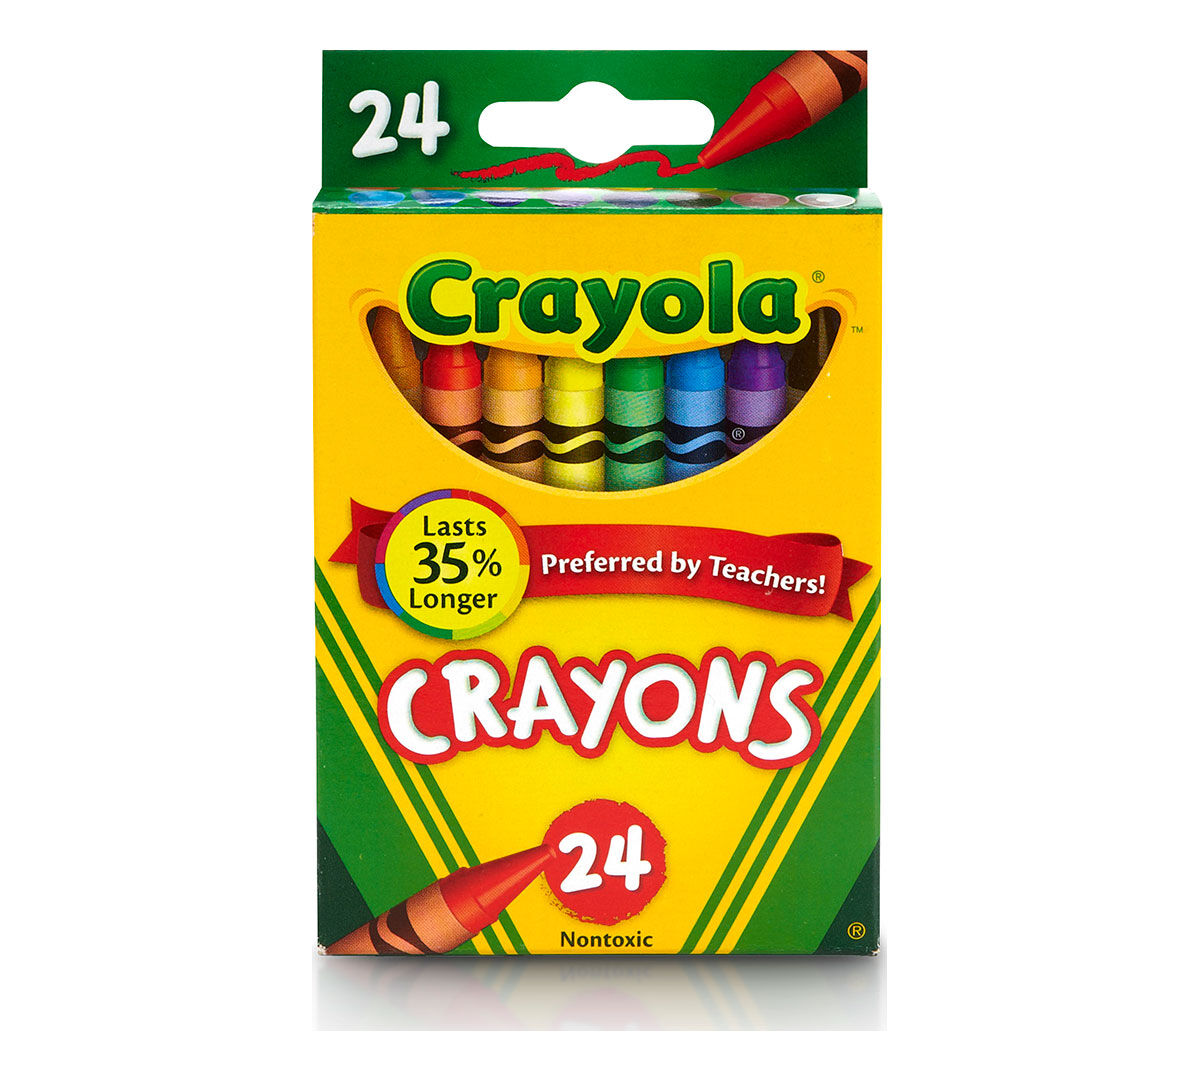 Shop online at Toys R Us for Crayola, Crayons, Pencil Crayons, Crayola Coloring Pages & more! Enjoy free in-store pickup at one of our 80+ stores!